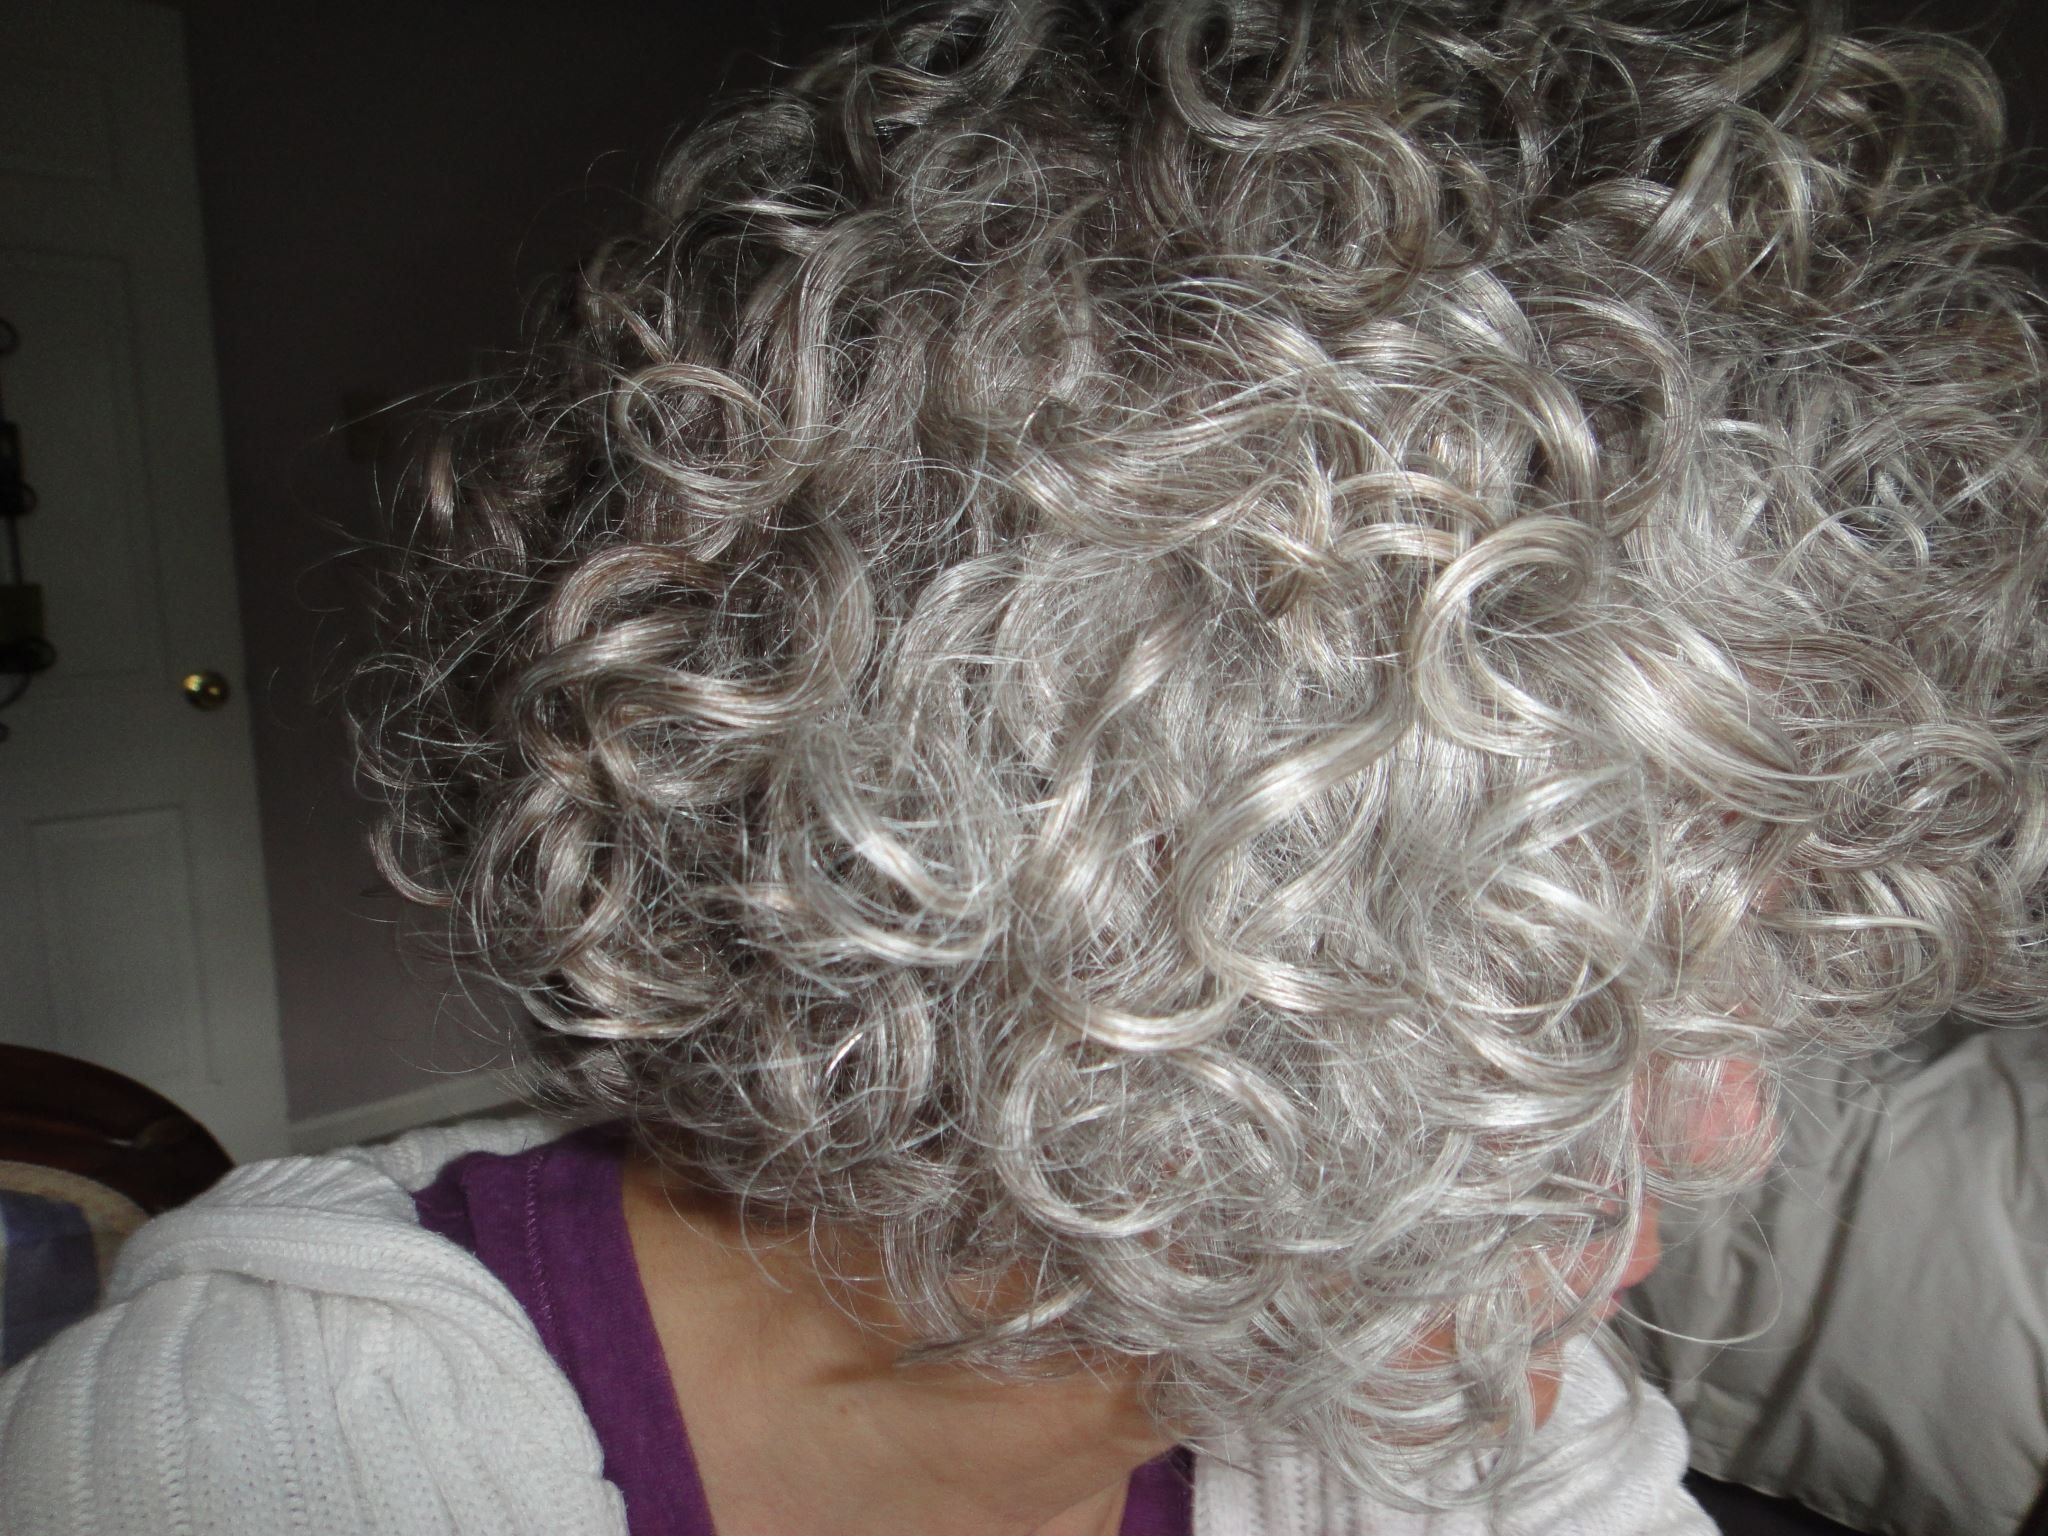 the only thing better than gray hair is curly gray hair! me